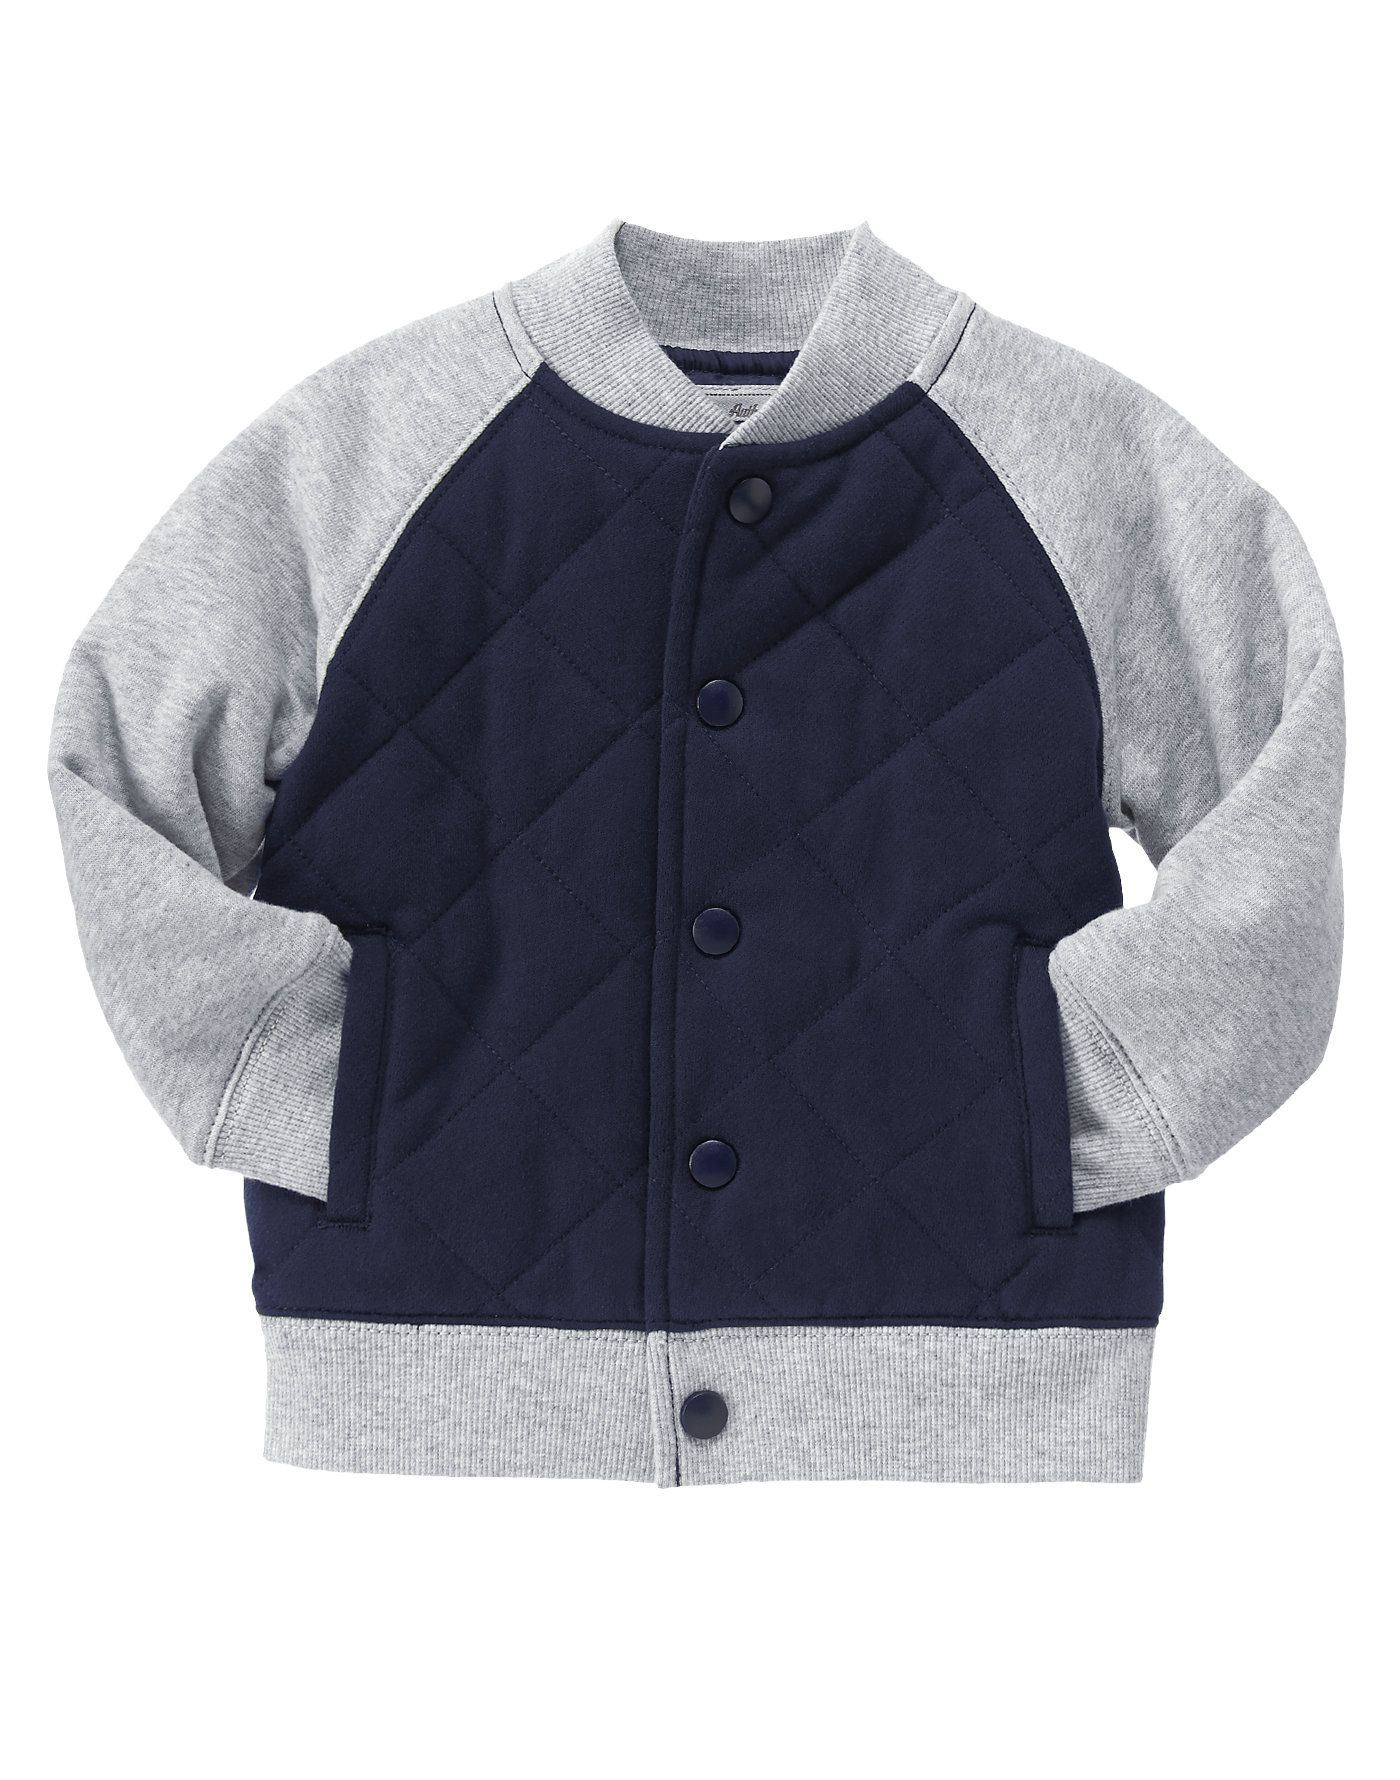 Quilted Varsity Jacket At Gymboree Everything For Boys Pinterest